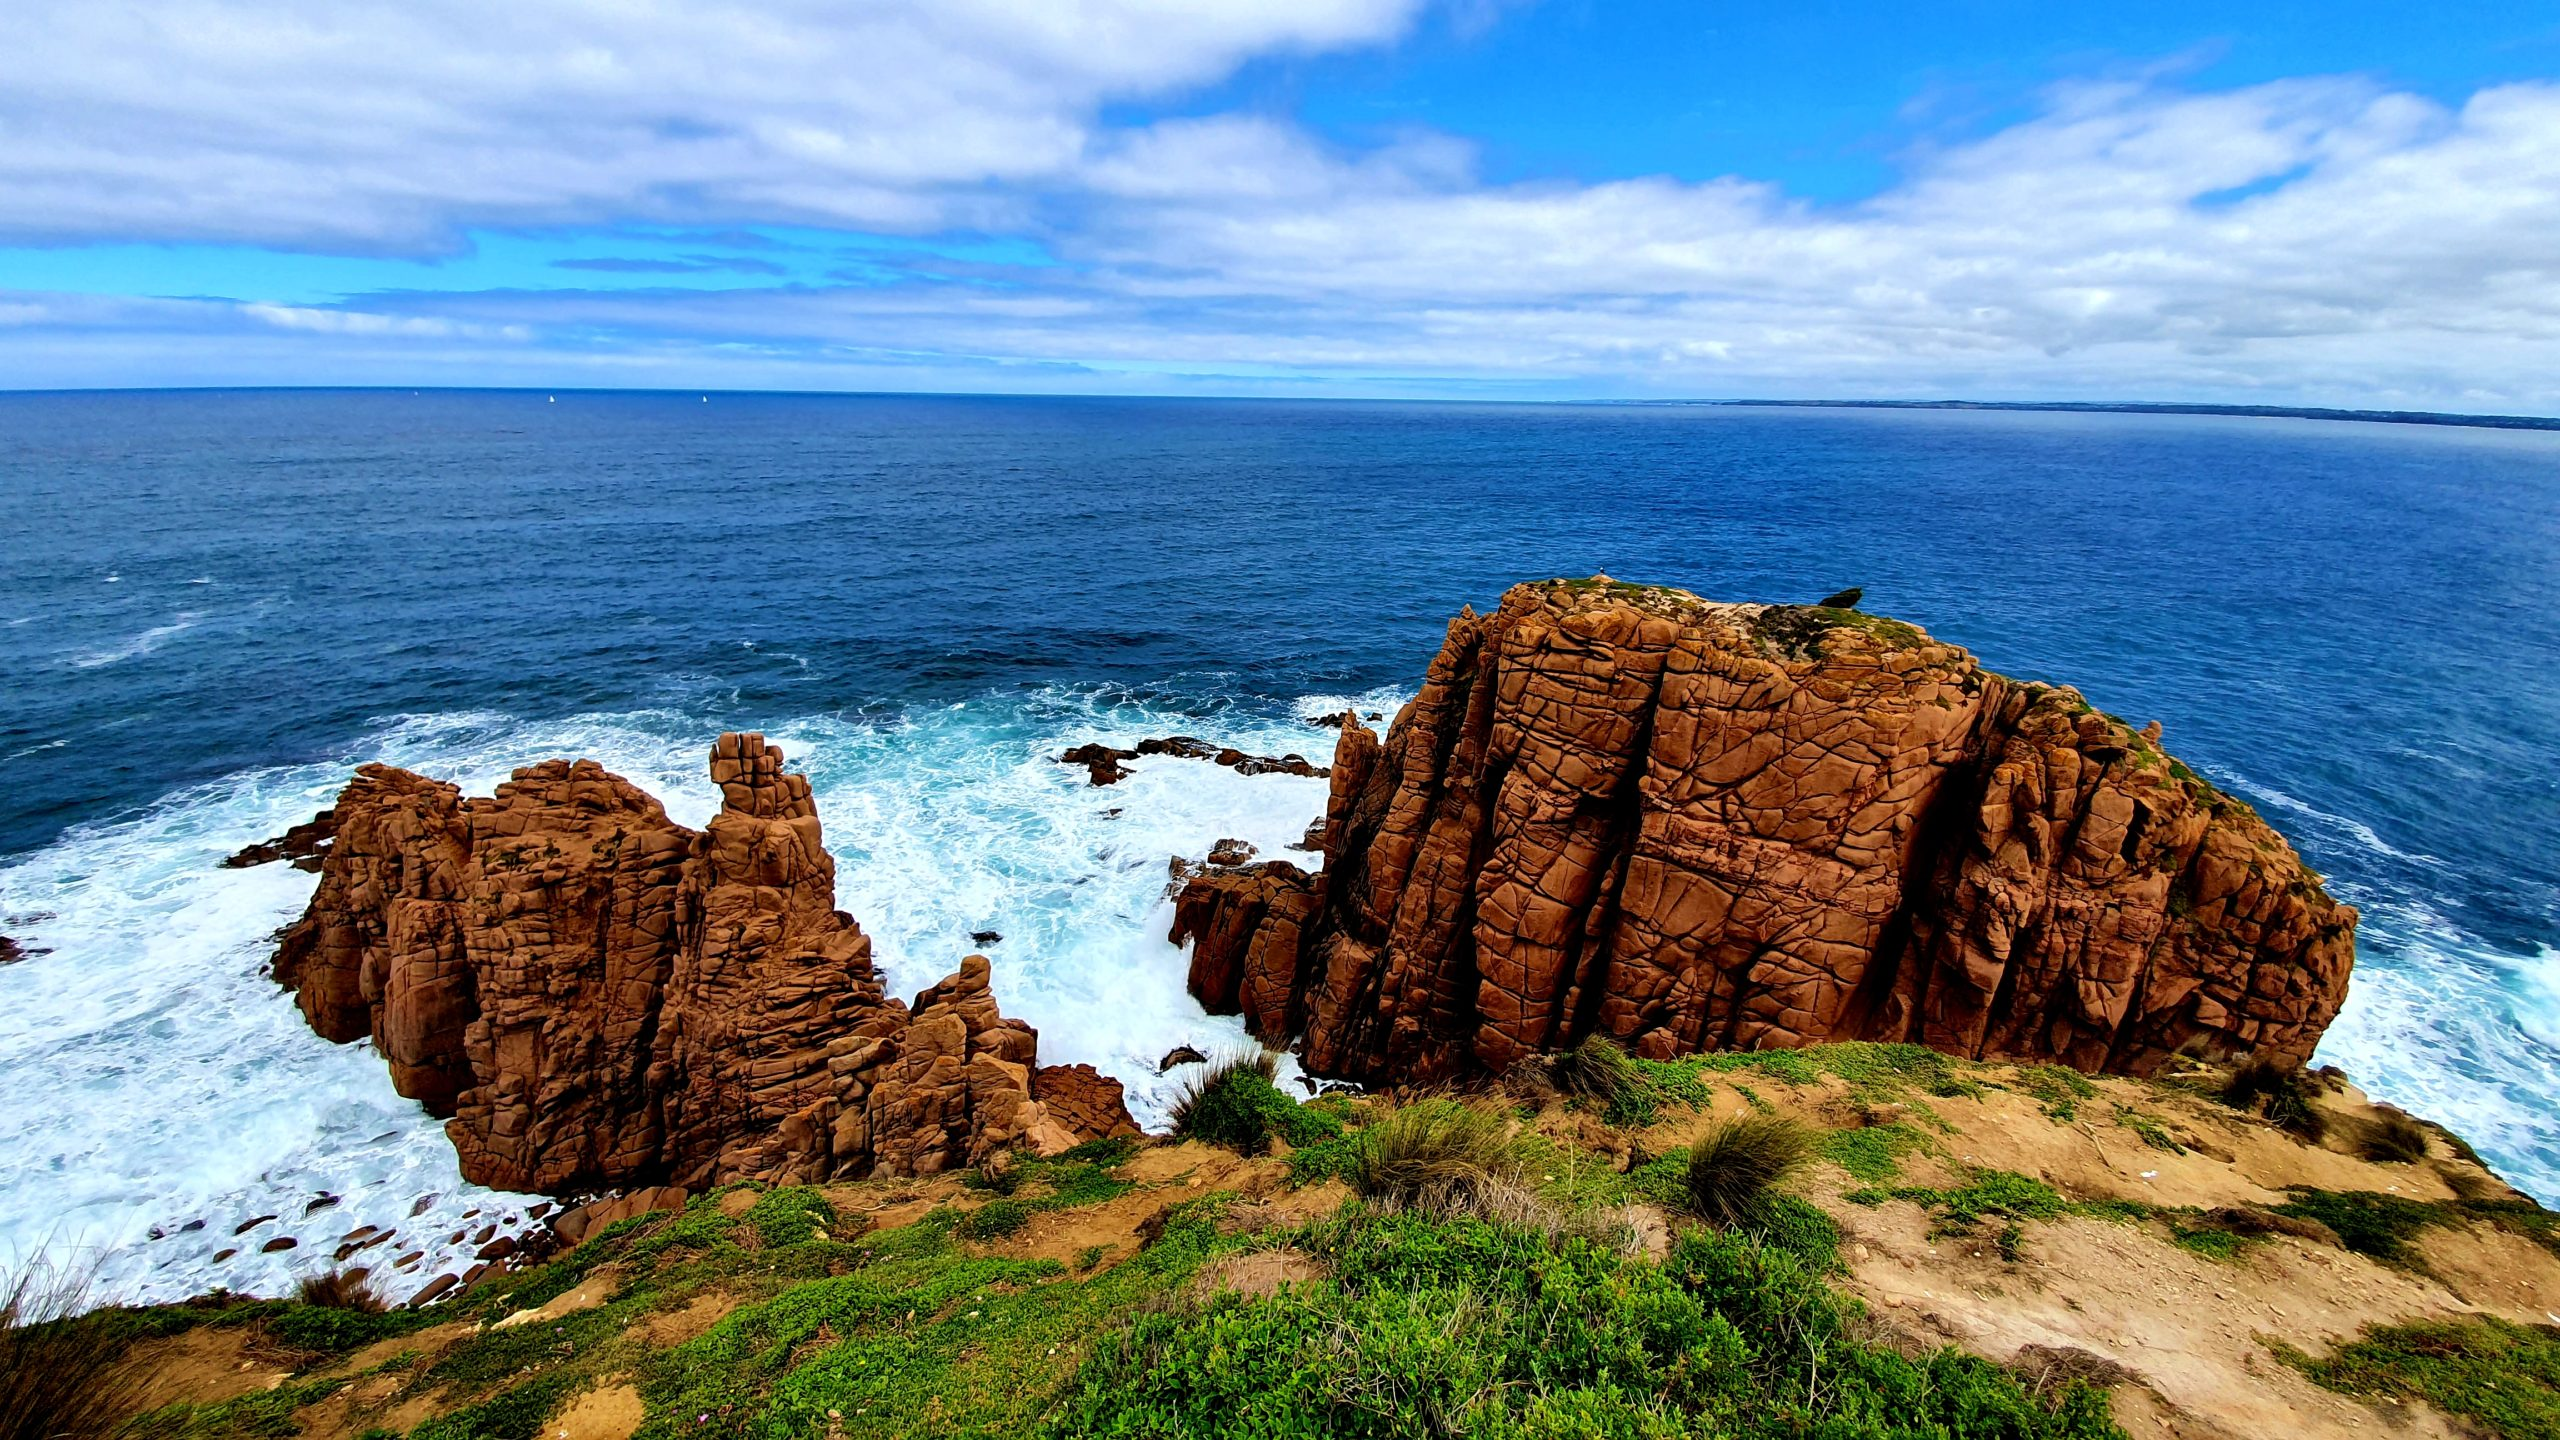 The Pinnacles is the top thing to do on Phillip Island